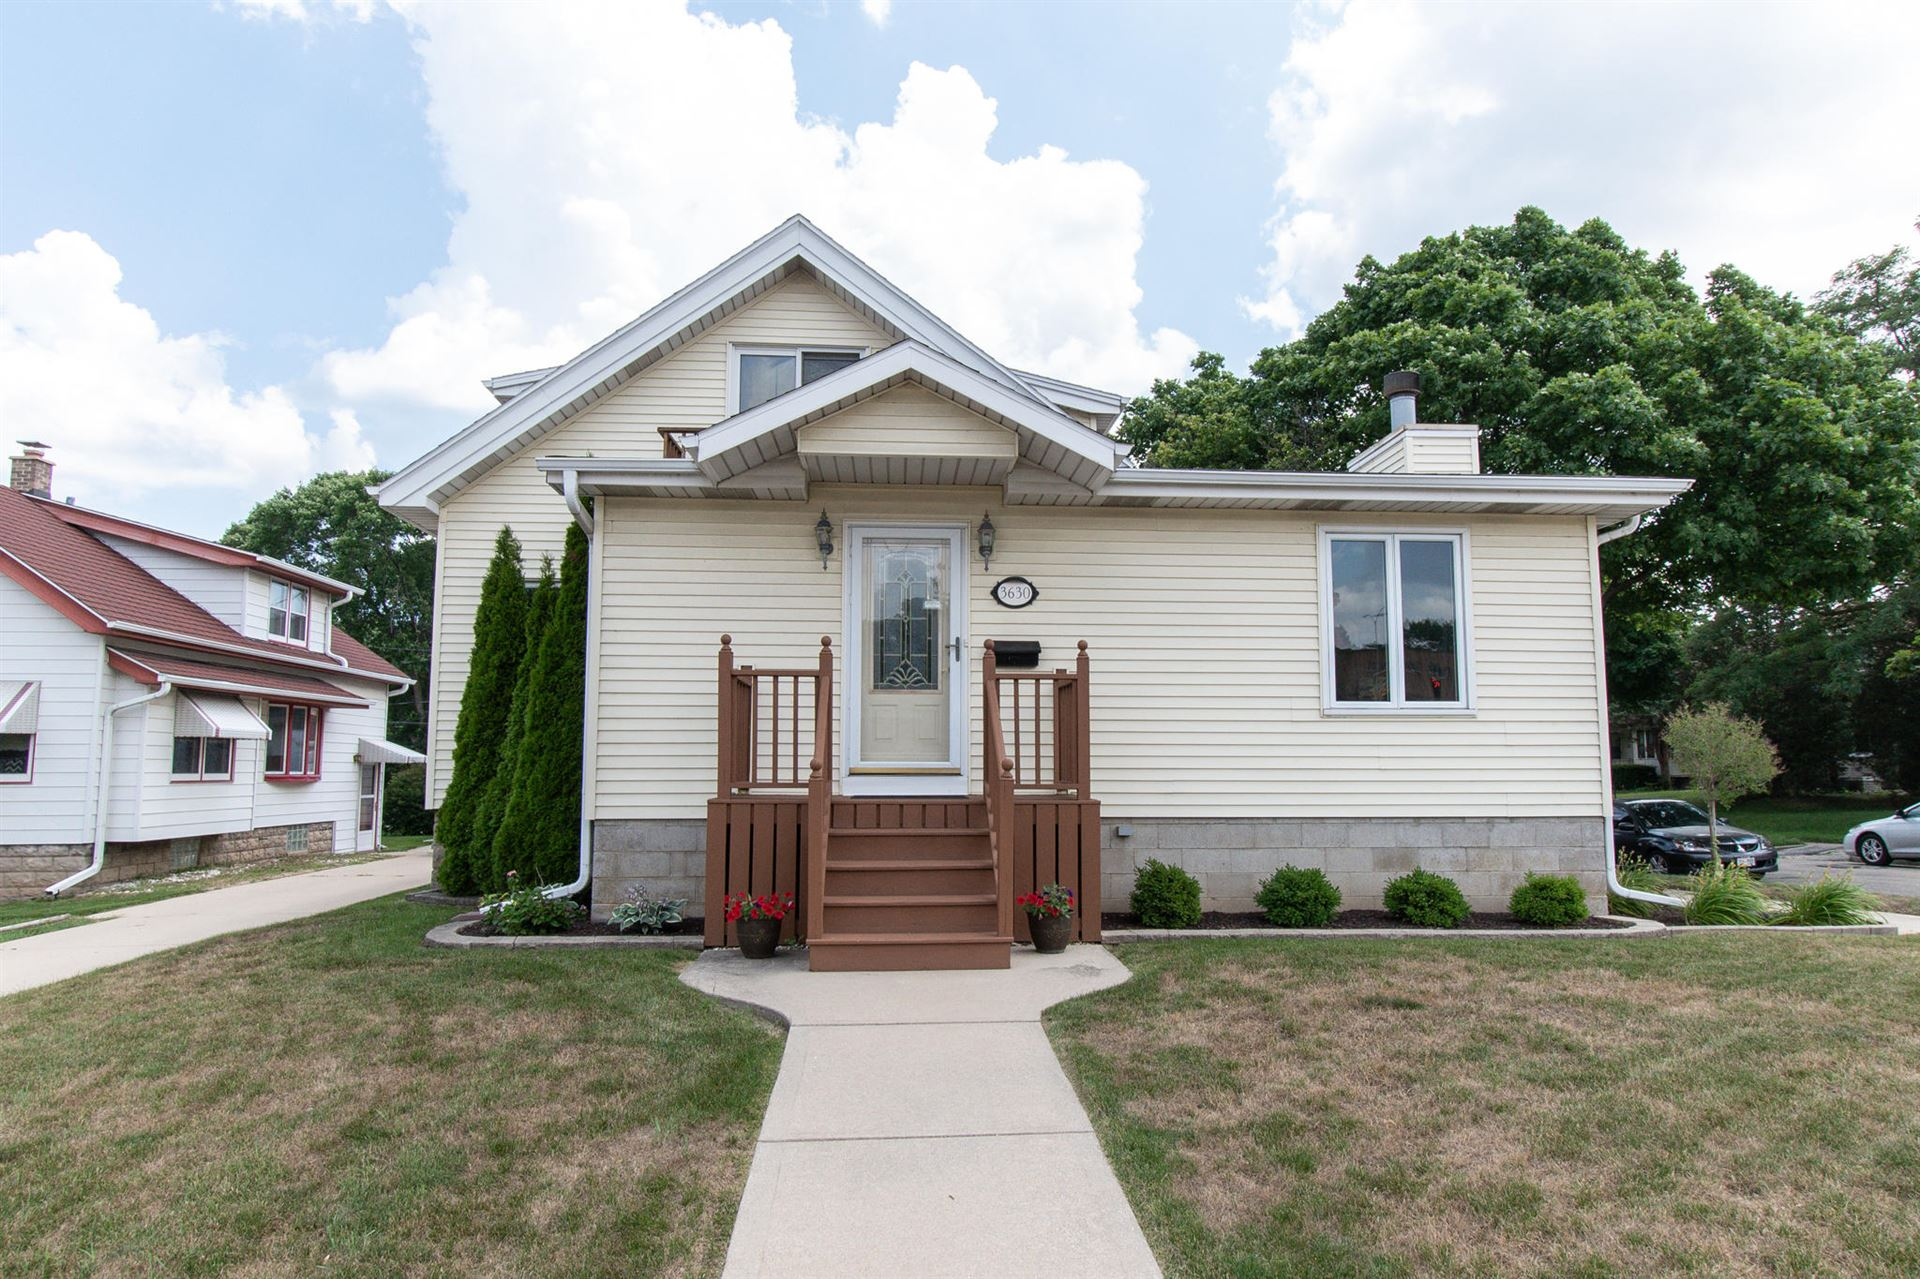 3630 S Howell Ave, Milwaukee, WI 53207 - #: 1751883